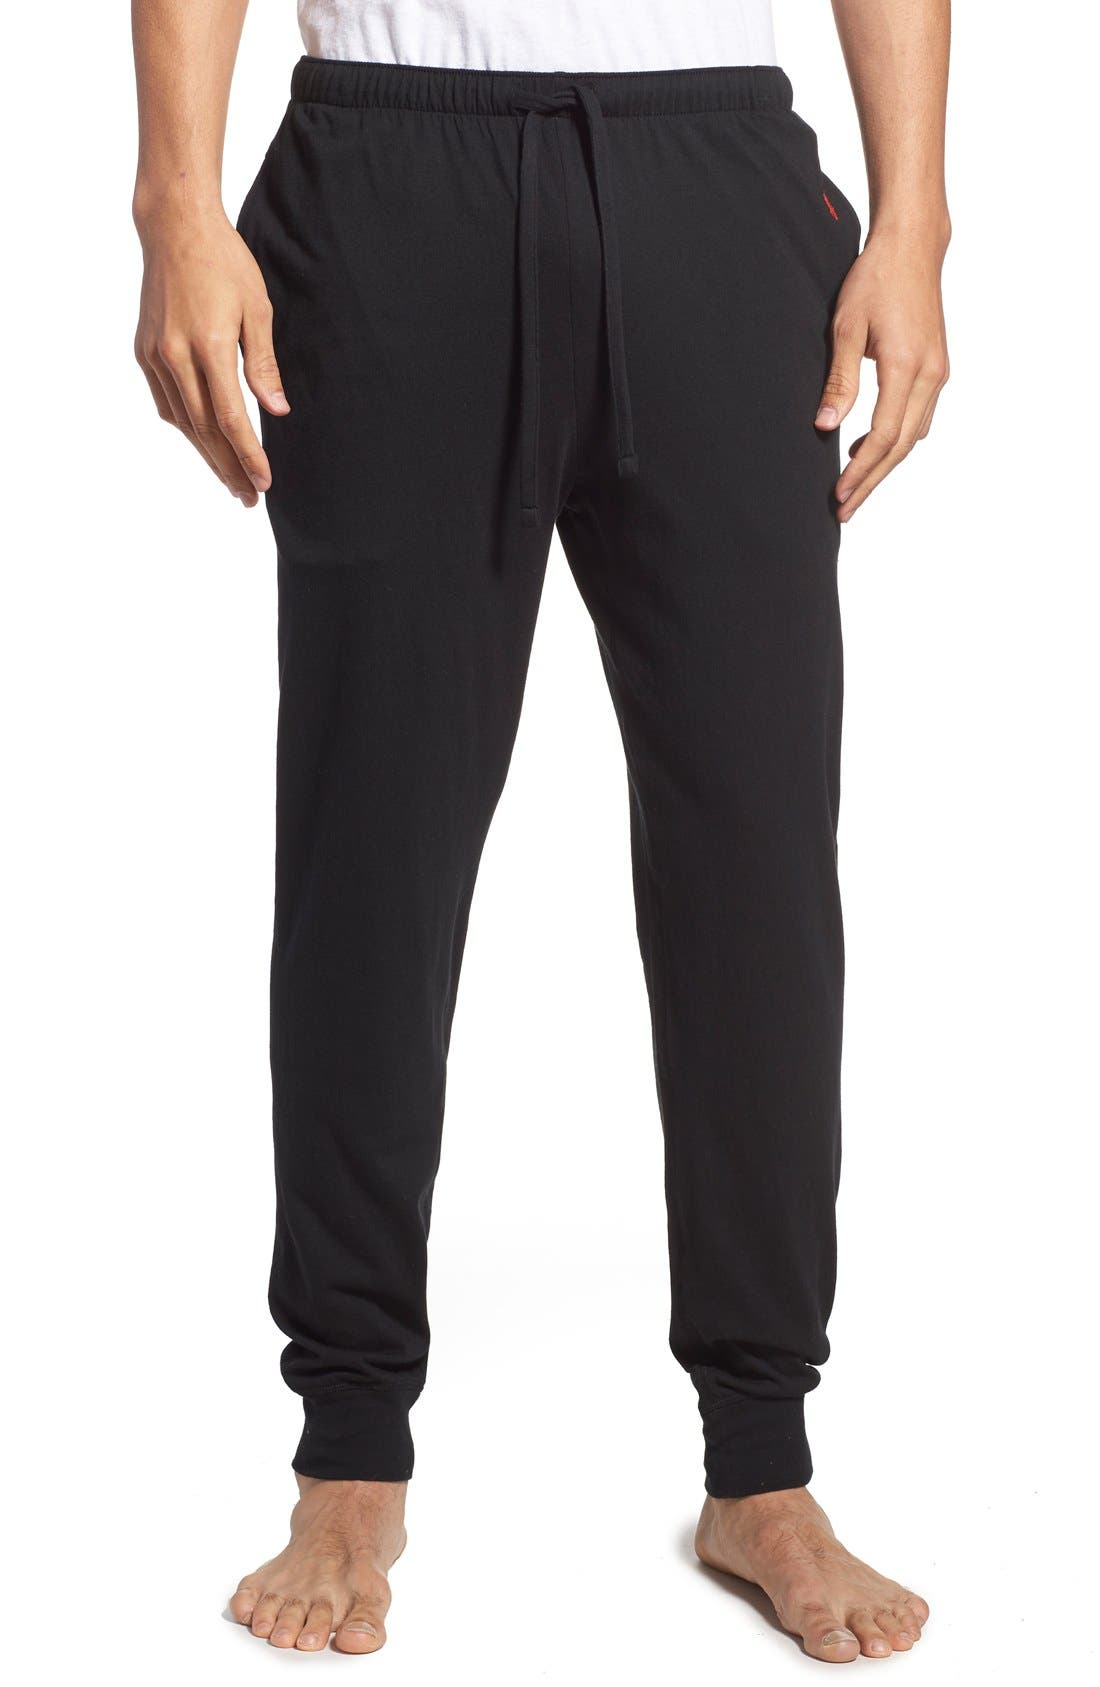 Main Image - Polo Ralph Lauren Relaxed Fit Cotton Knit Lounge Jogger Pants